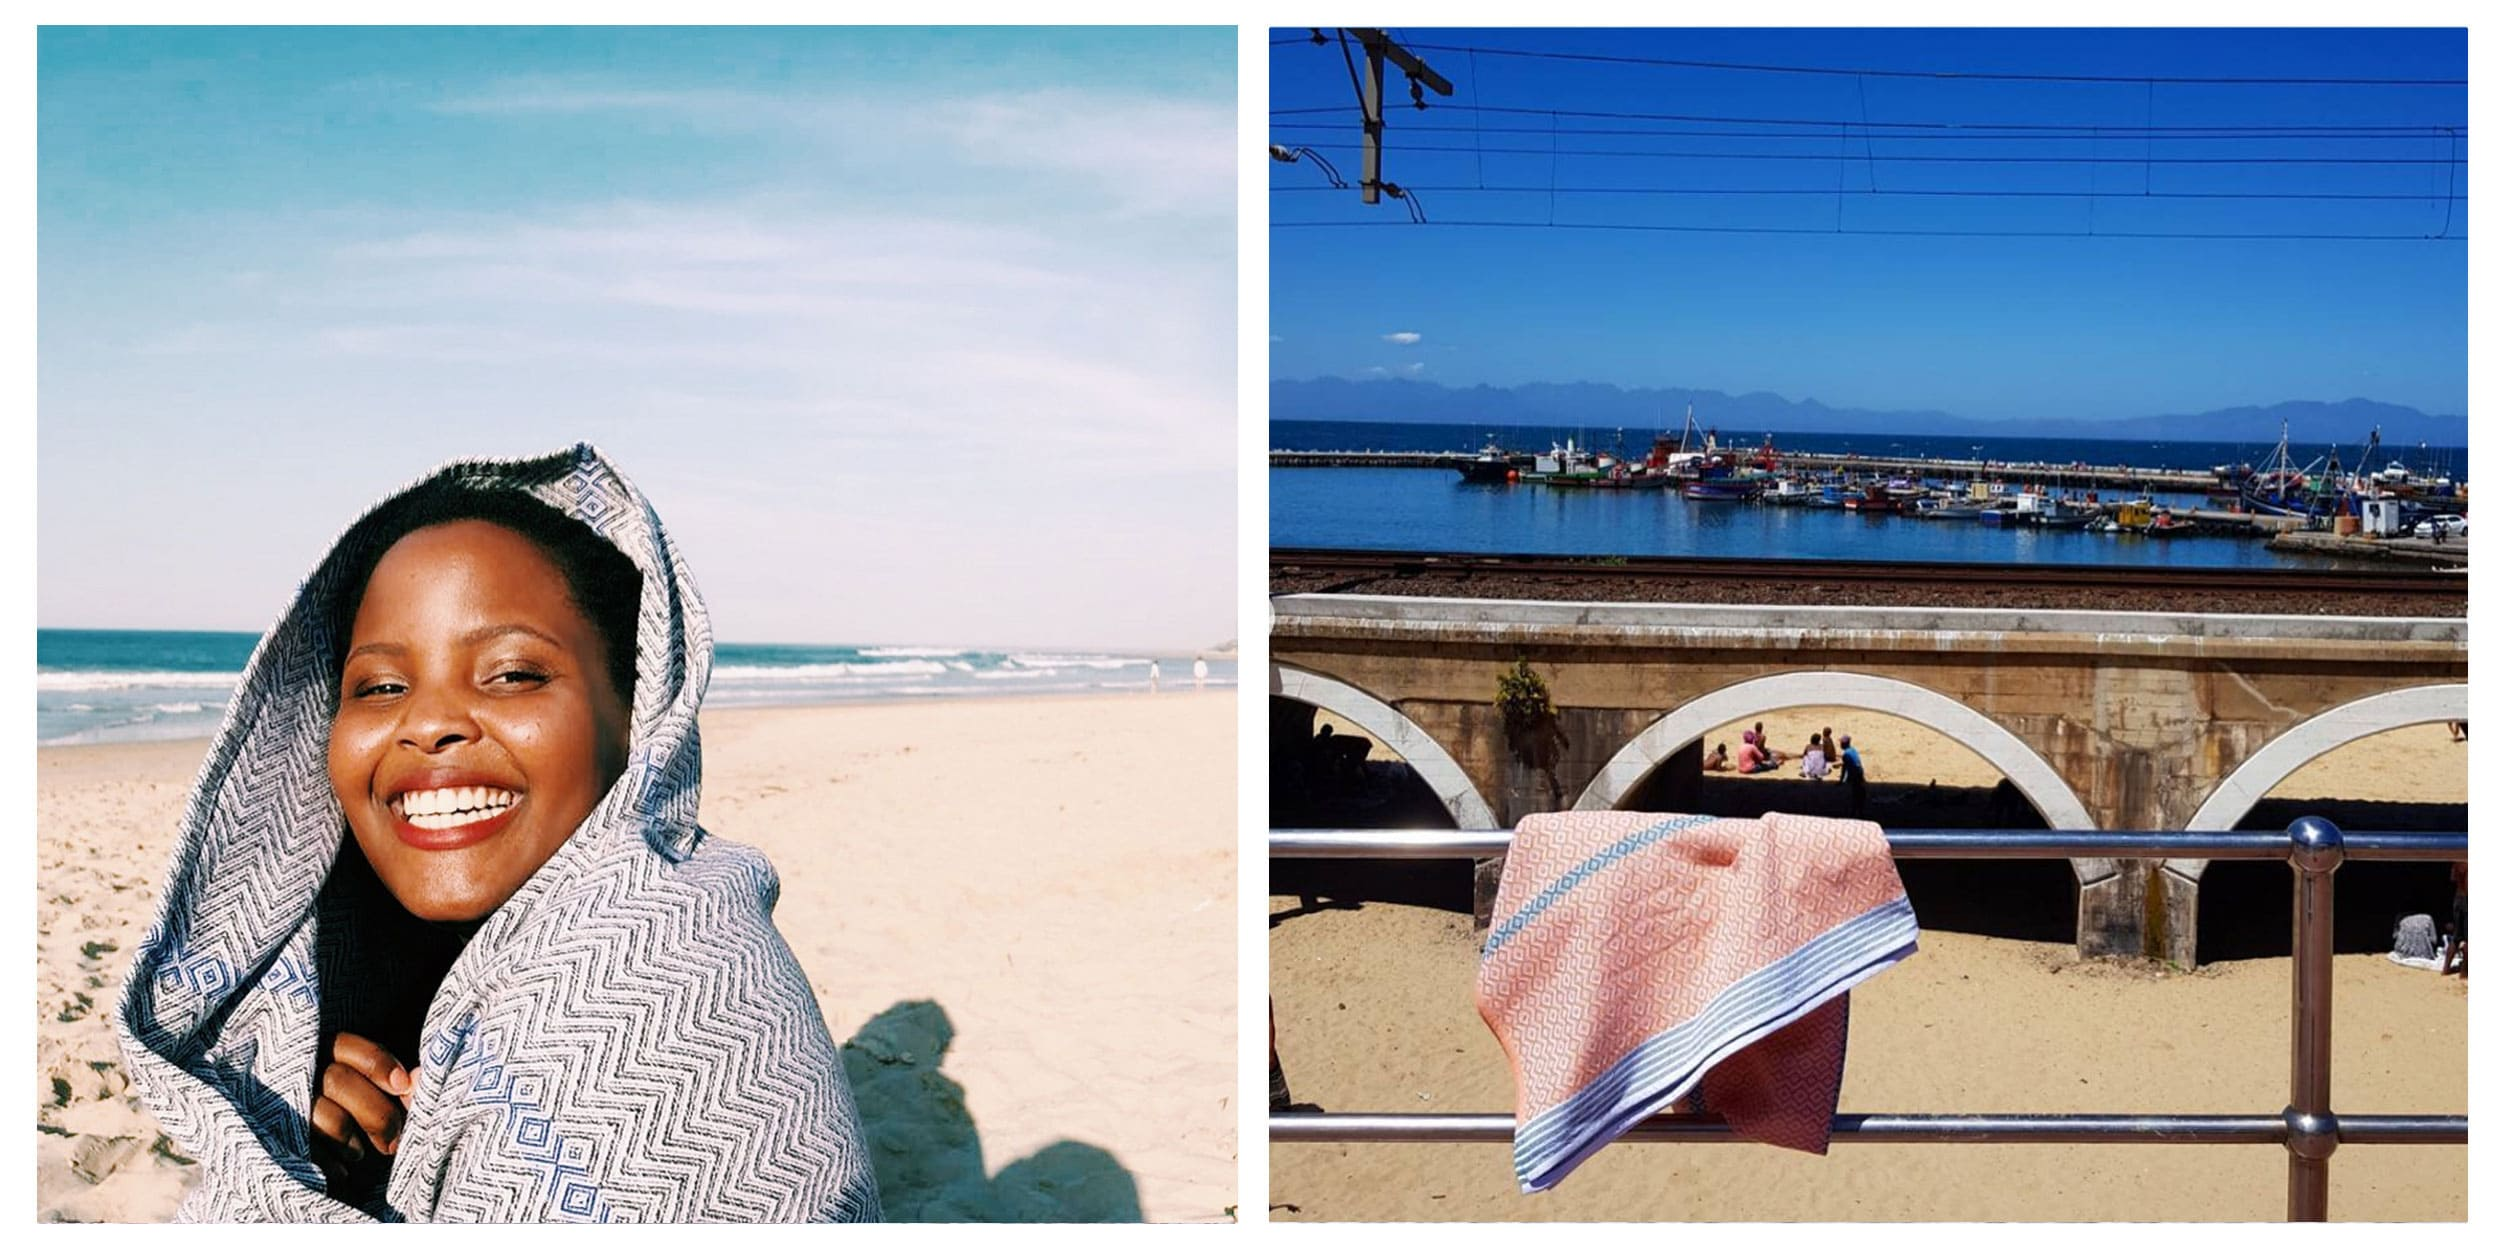 Mungo instagram competition asking followers to share their towel photographs. Featured here is the Tawulo on a beach and the Itawuli in Kalk Bay